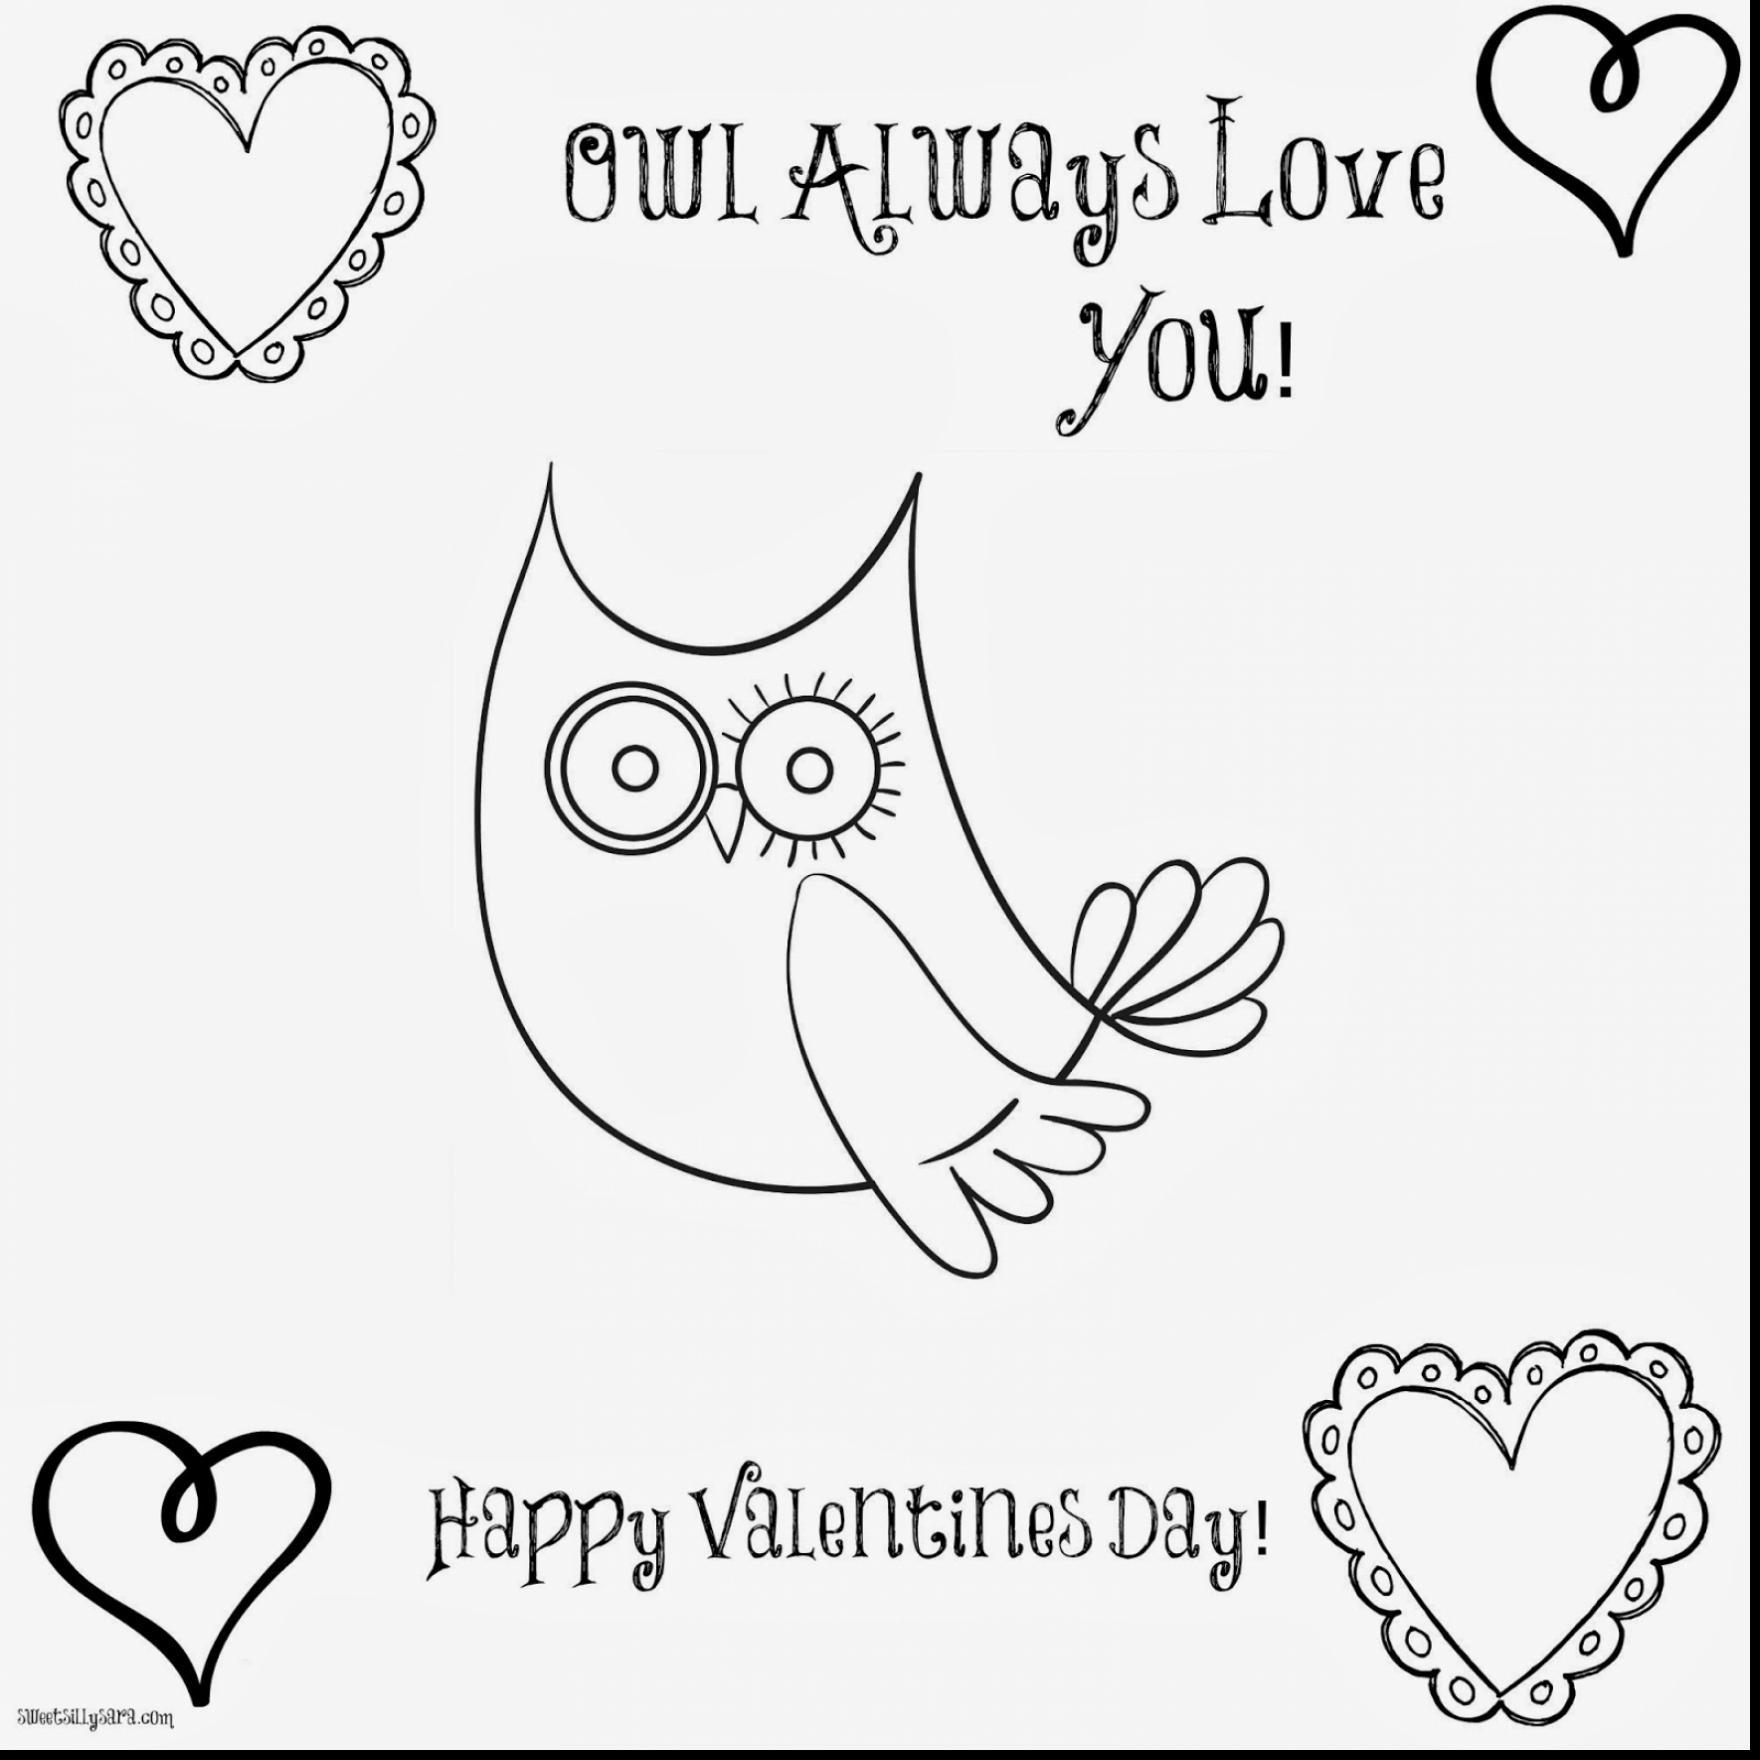 1760x1760 Marvelous Adult Love Coloring Page Withlove You Of Trend And Man